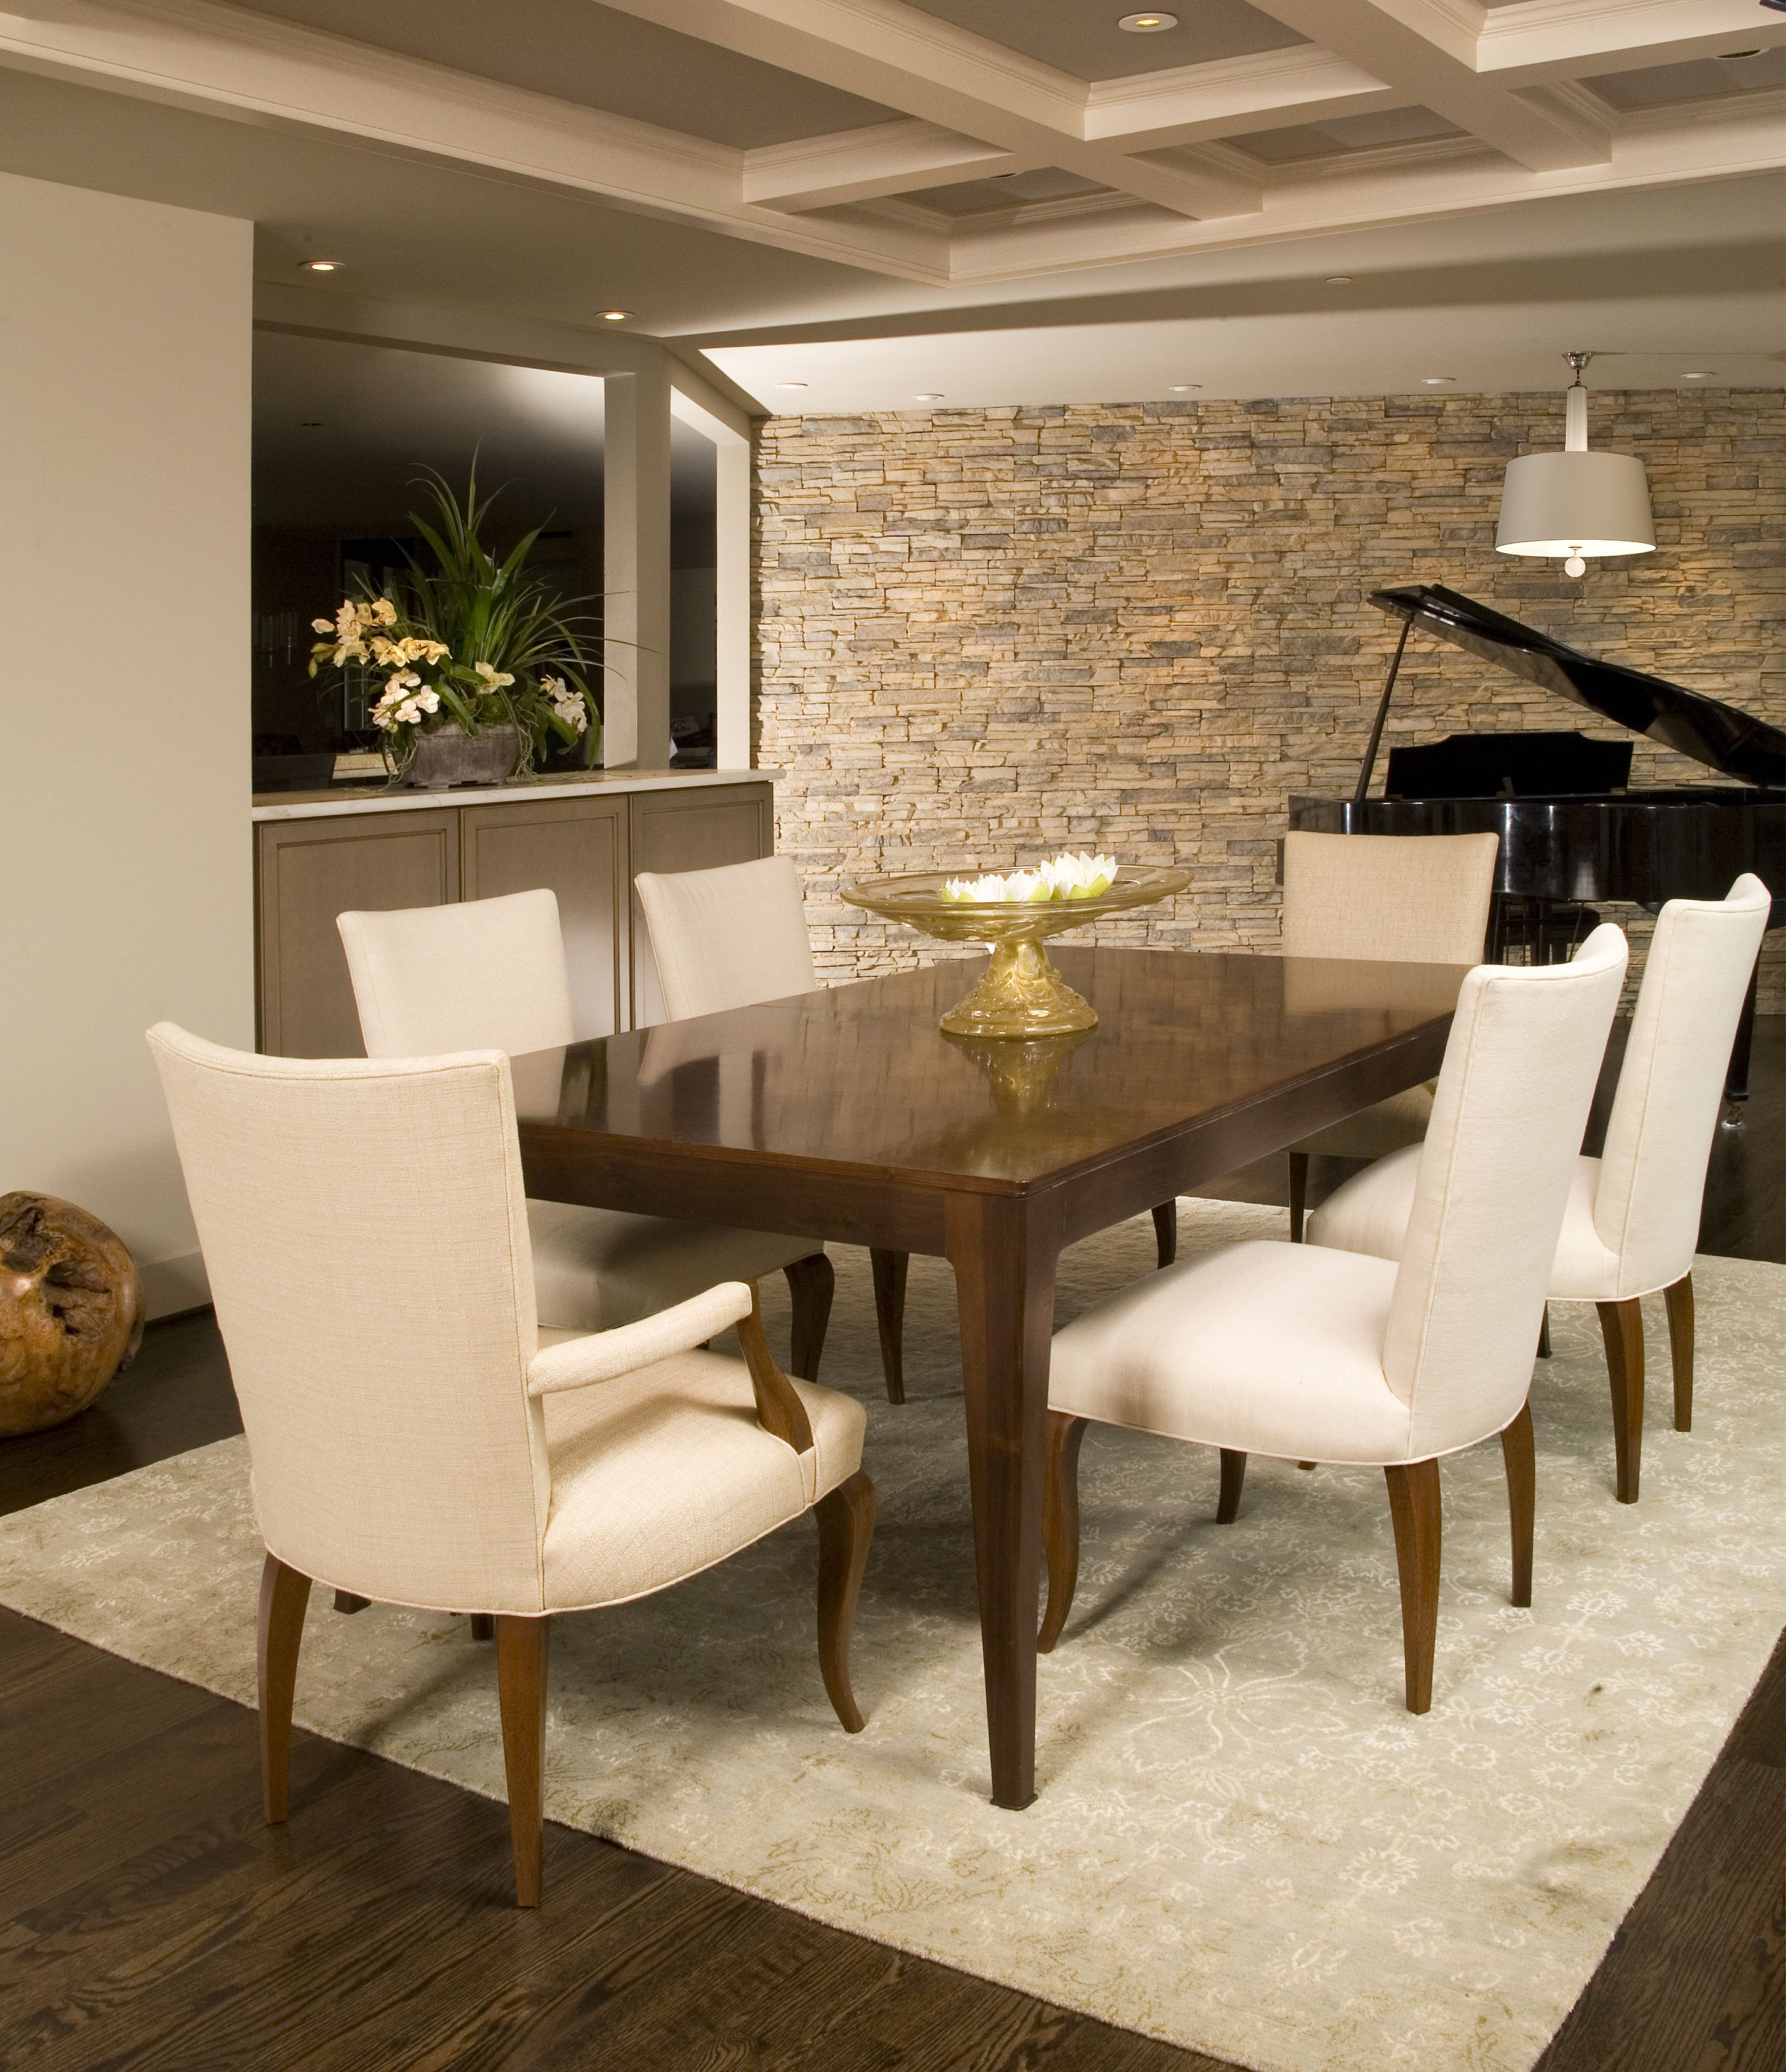 Modern dining room with clean lines and neutral stone wall